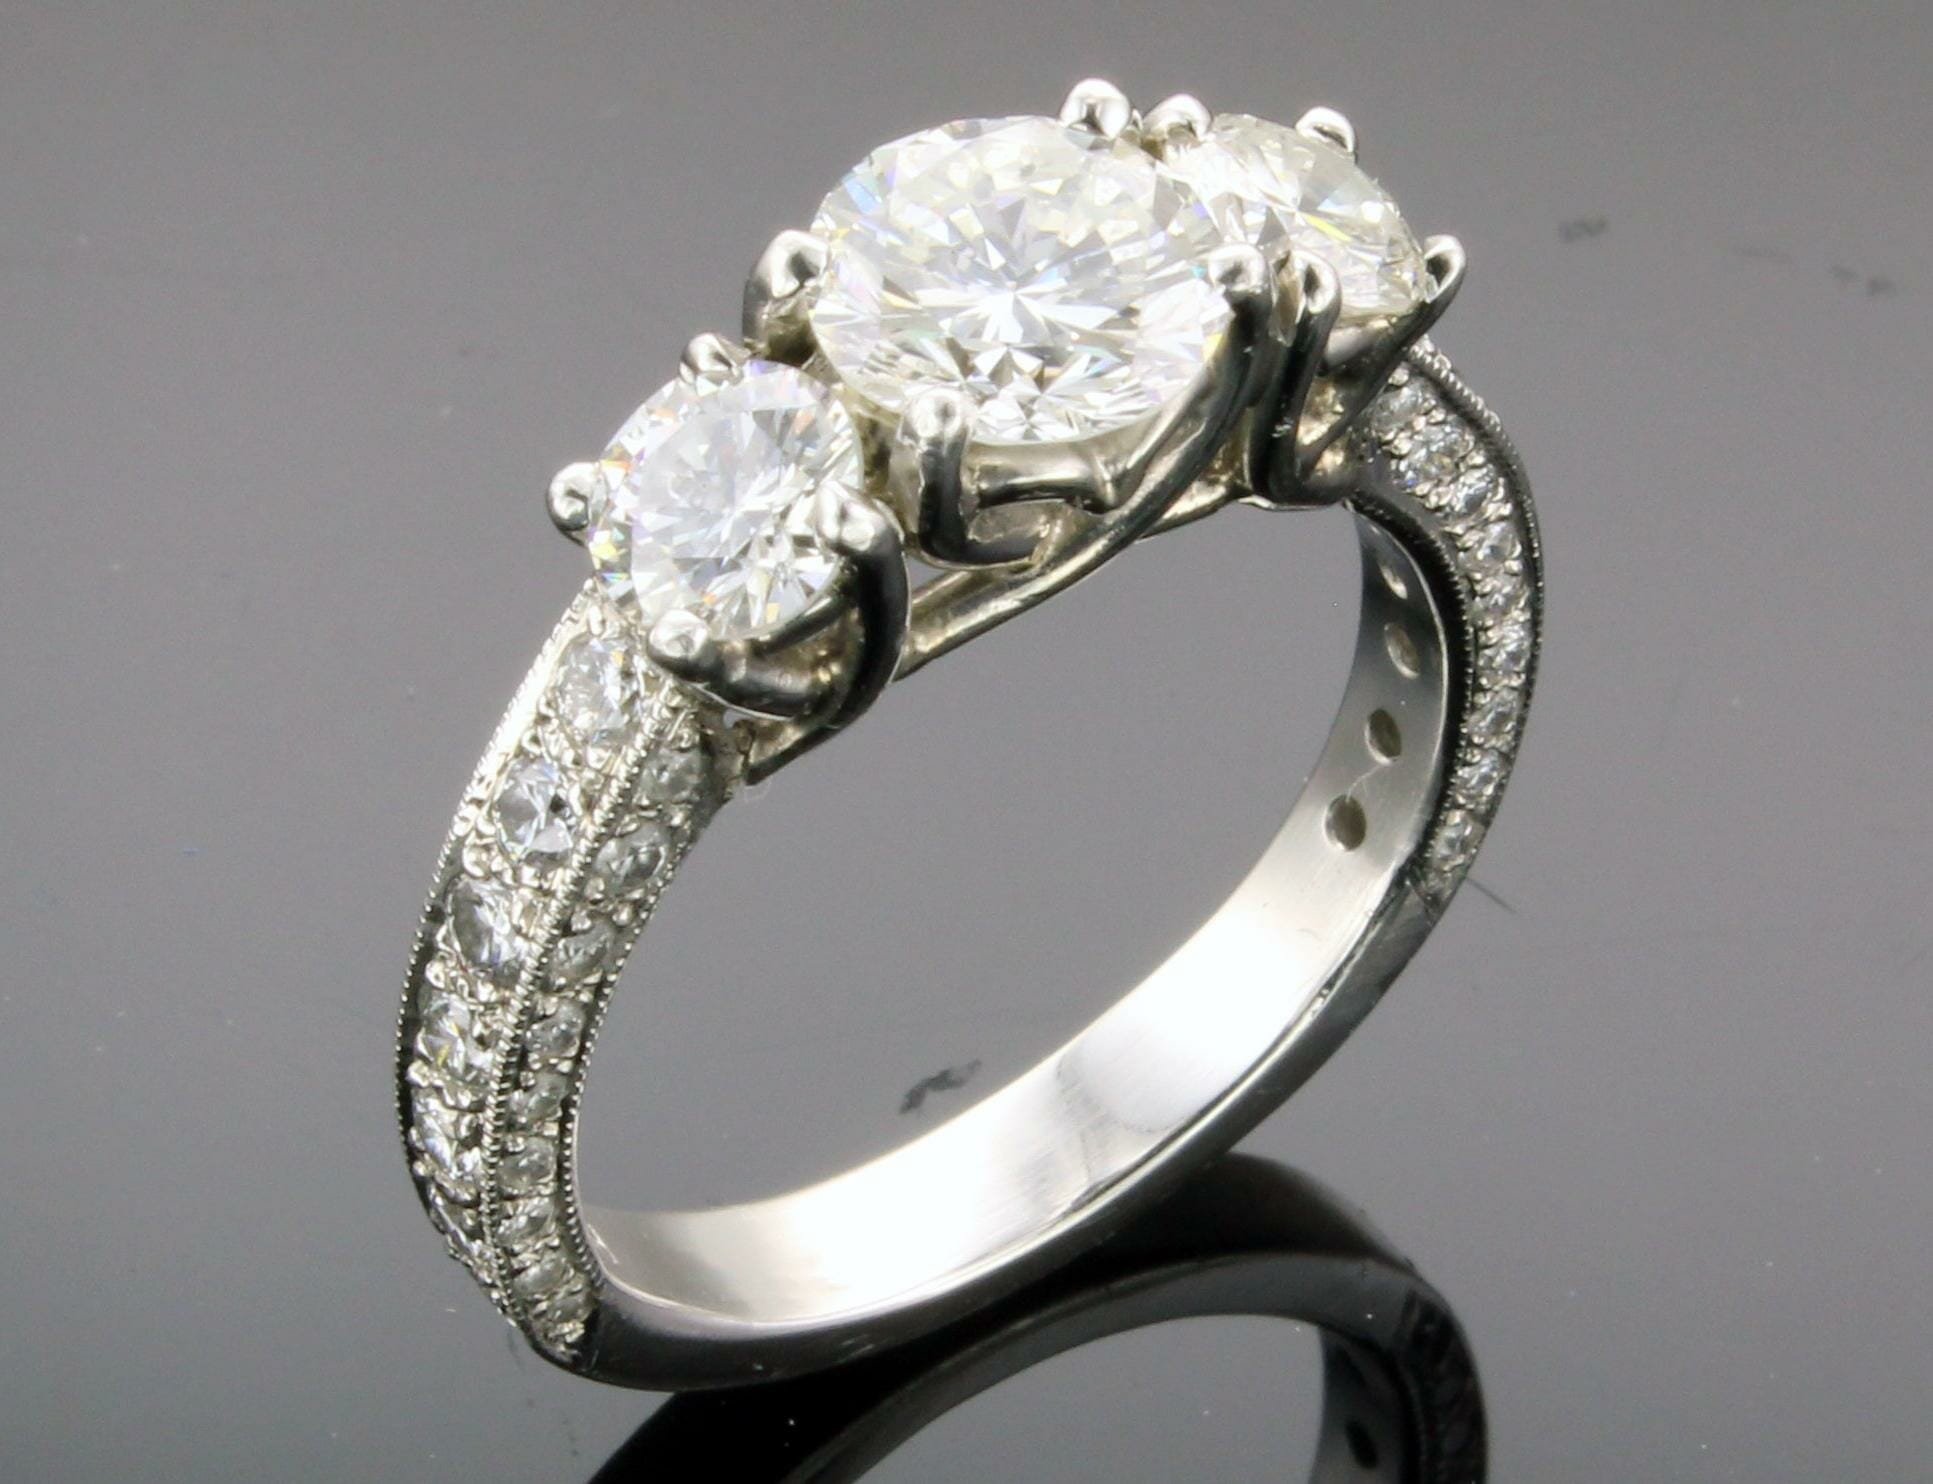 jewellery engagement diamond product stone ring